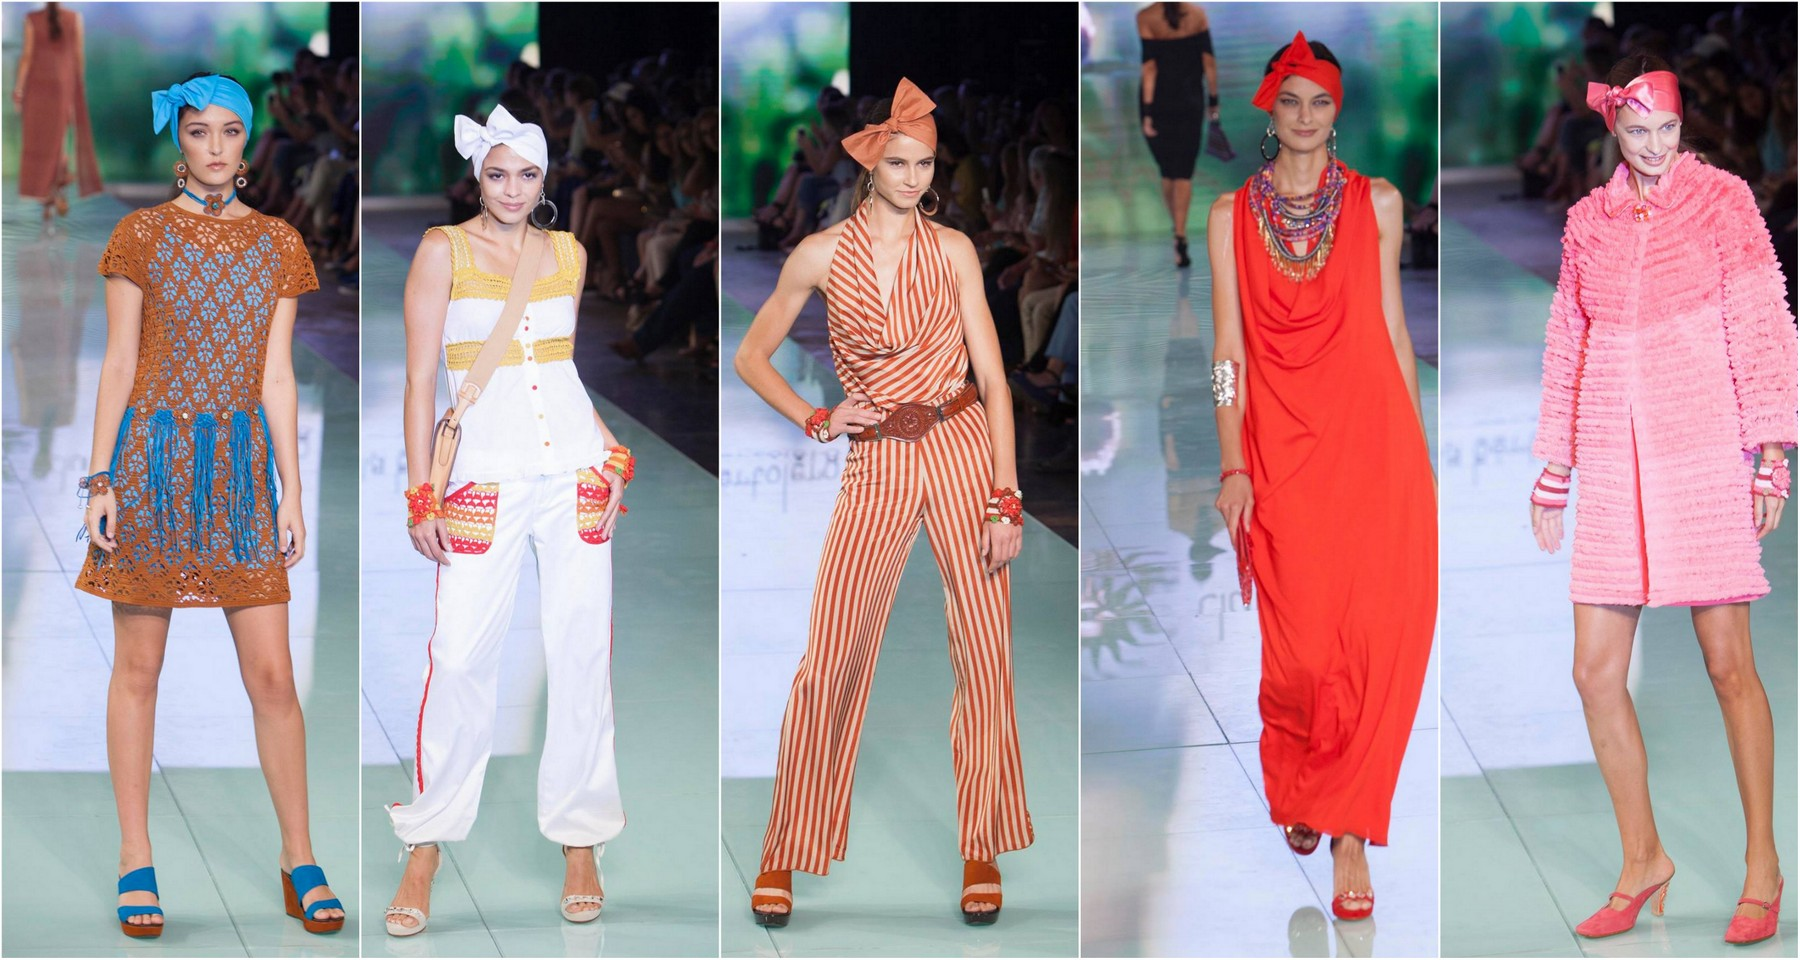 Miami Fashion Week 2016: Claudia Bertolero